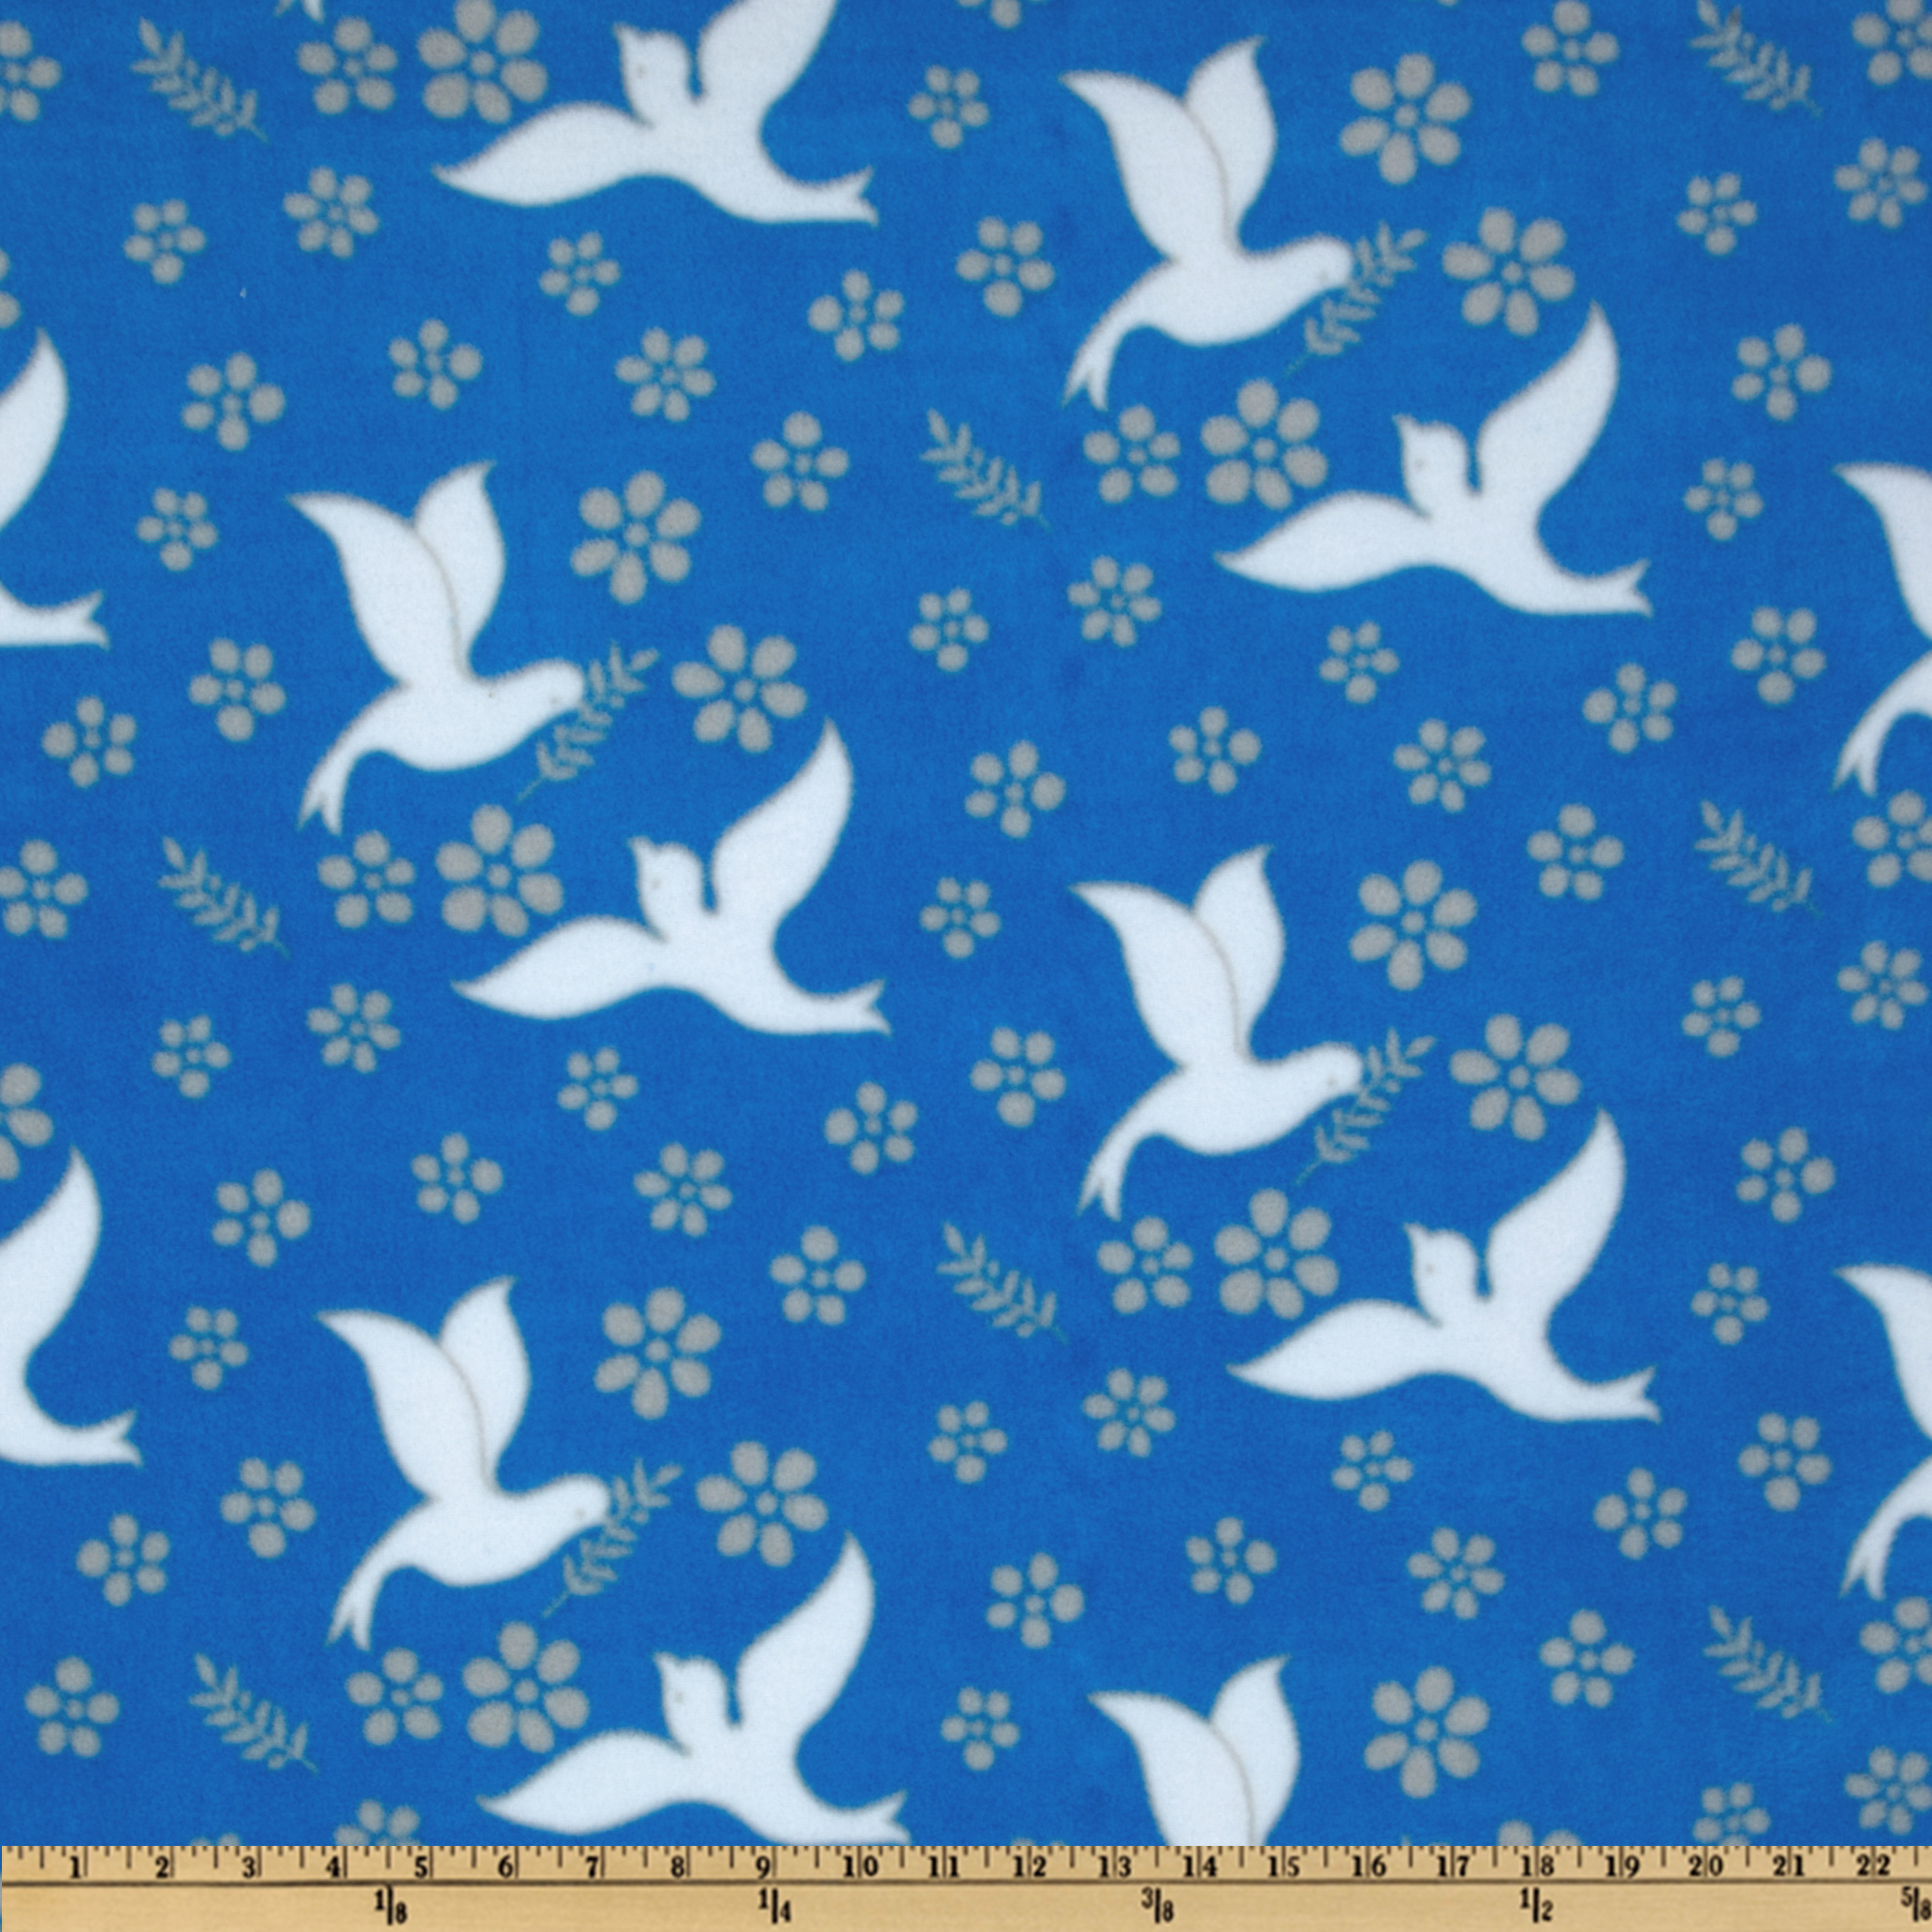 WinterFleece Doves of Peace Blue Fabric